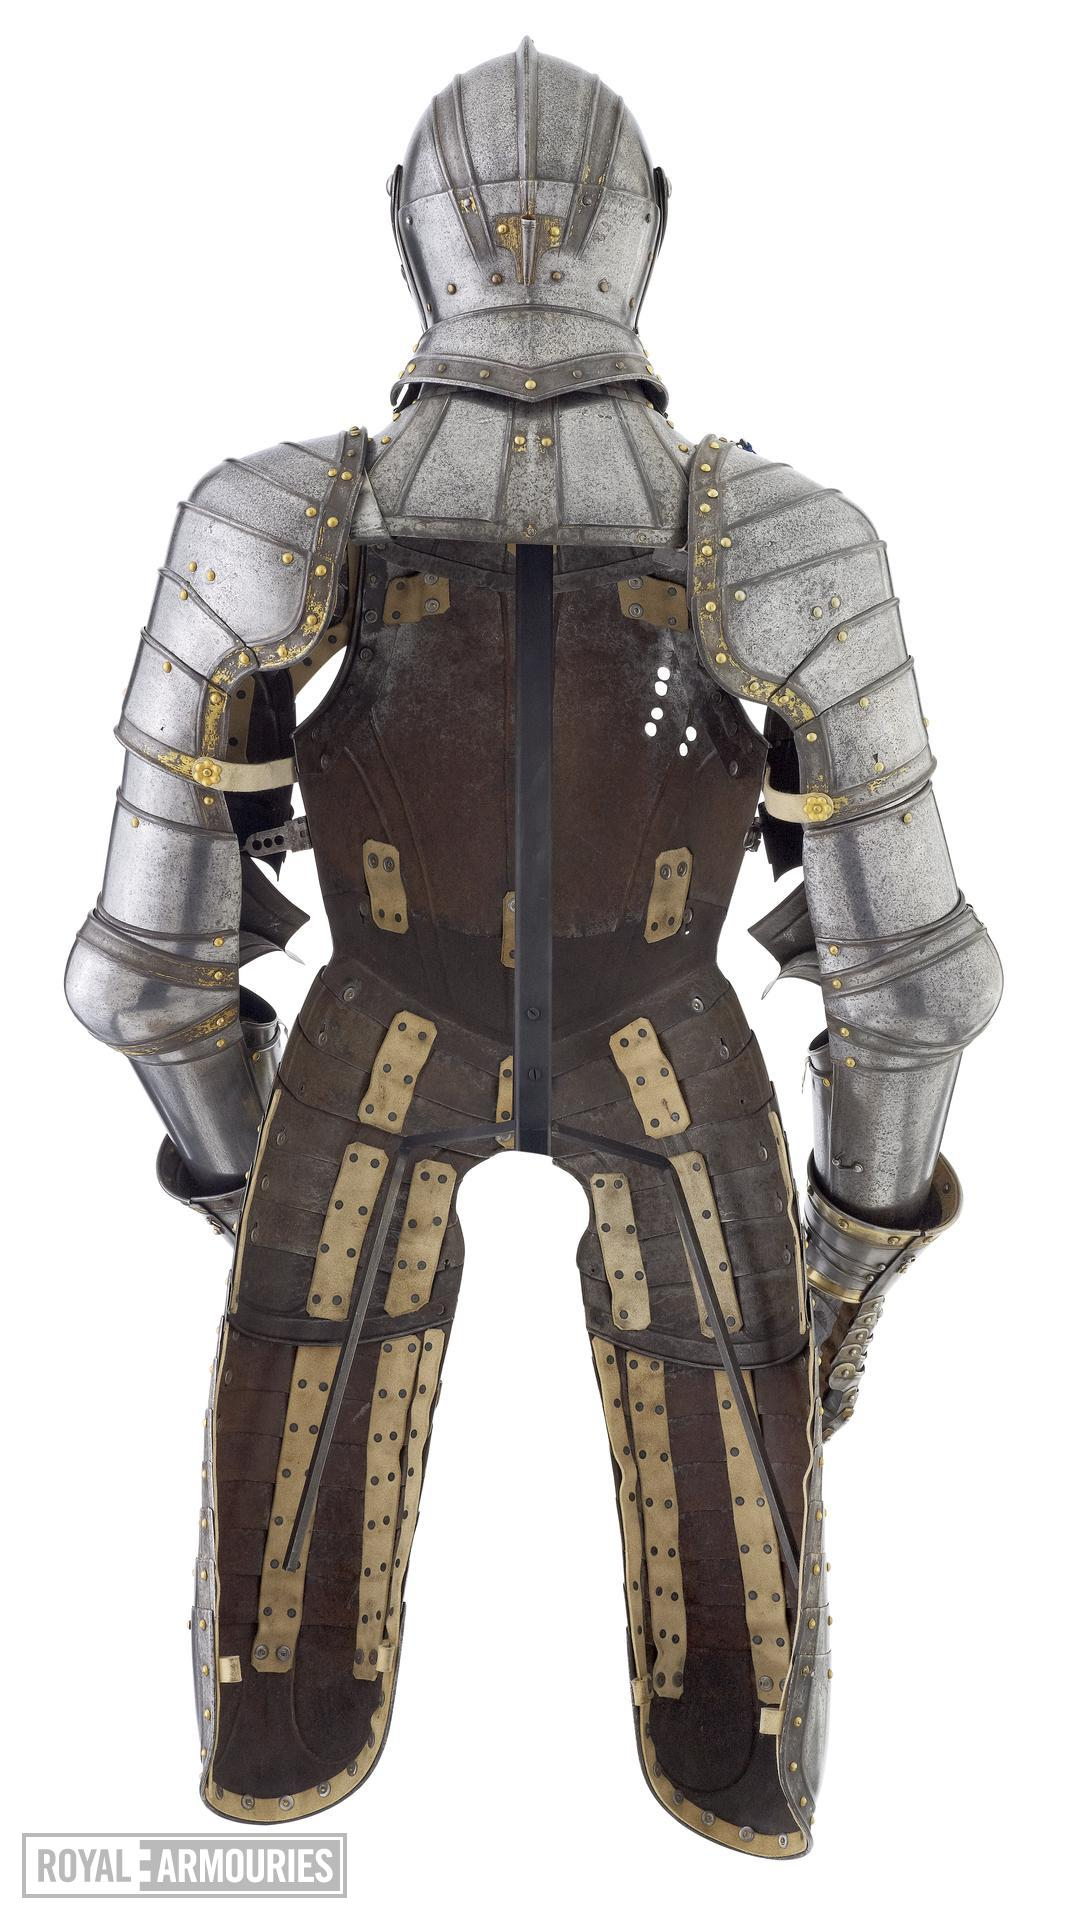 Three quarter armour, of William Herbert 1st Earl of Pembroke, or Henry Herbert 2nd Earl. The right gauntlet is restored and the backplate is missing. English, Greenwich, about 1550